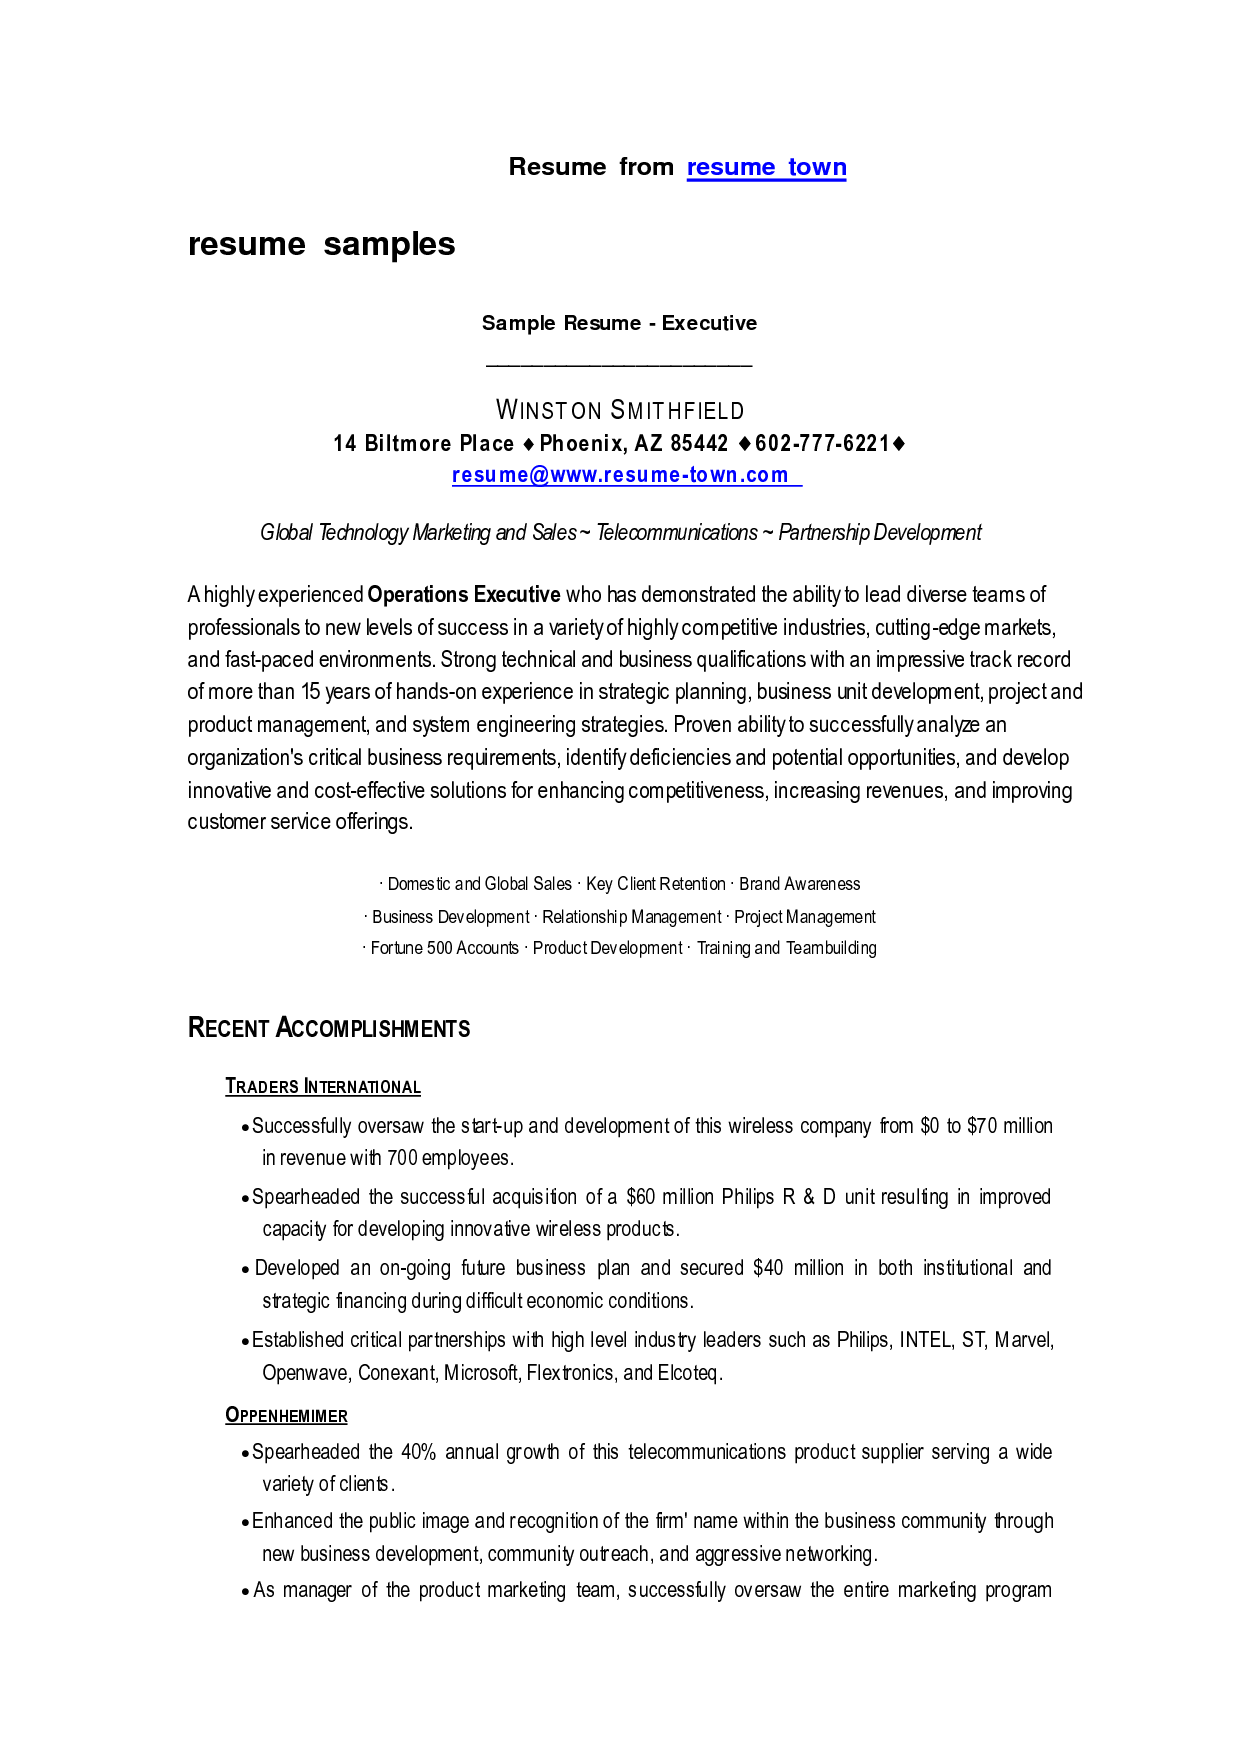 Google Resume Templates Resume Sample Templates Inspiration Decoration Free Google Docs